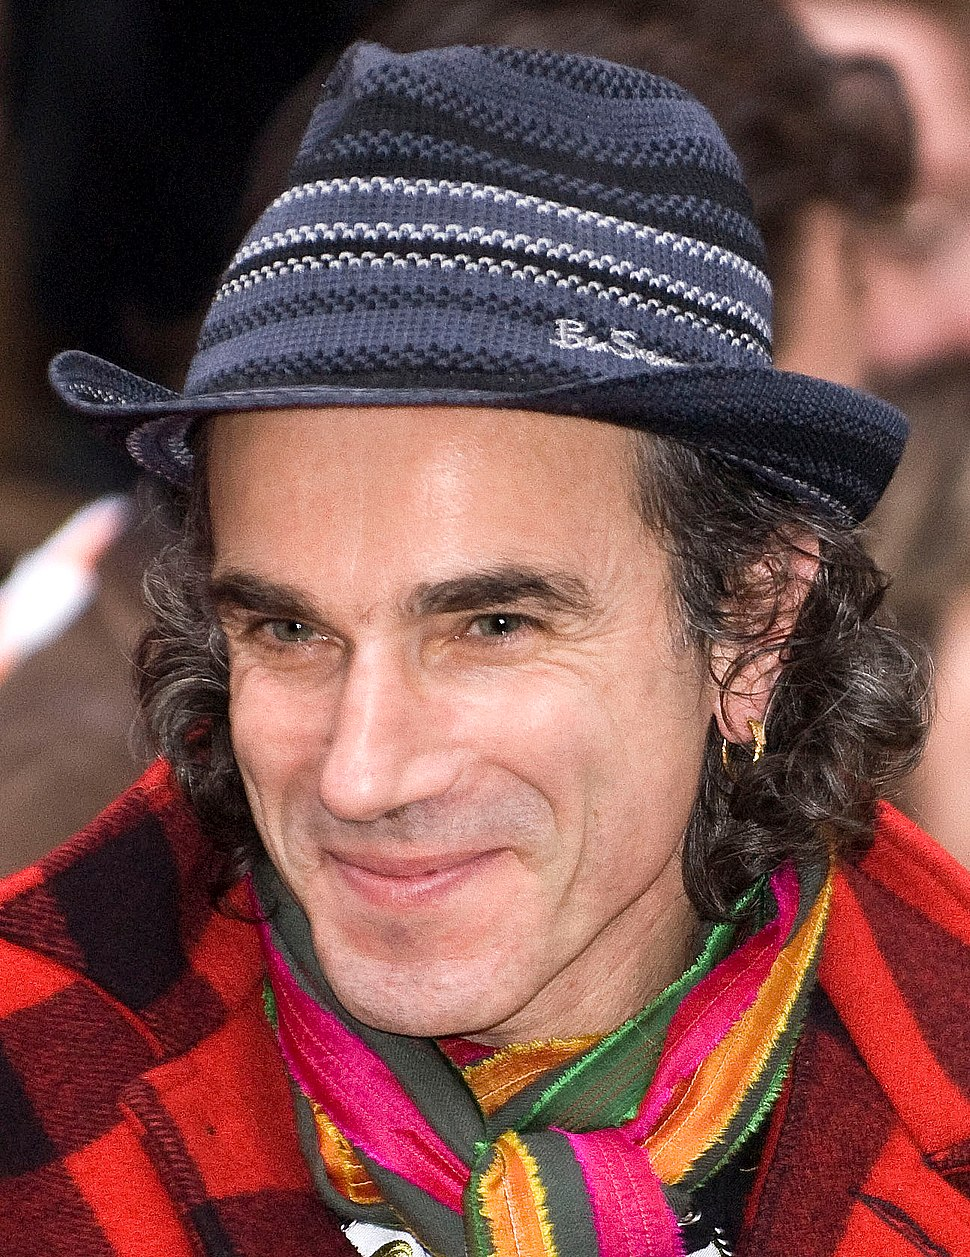 Daniel Day-Lewis2 Berlinale 2008 (2)